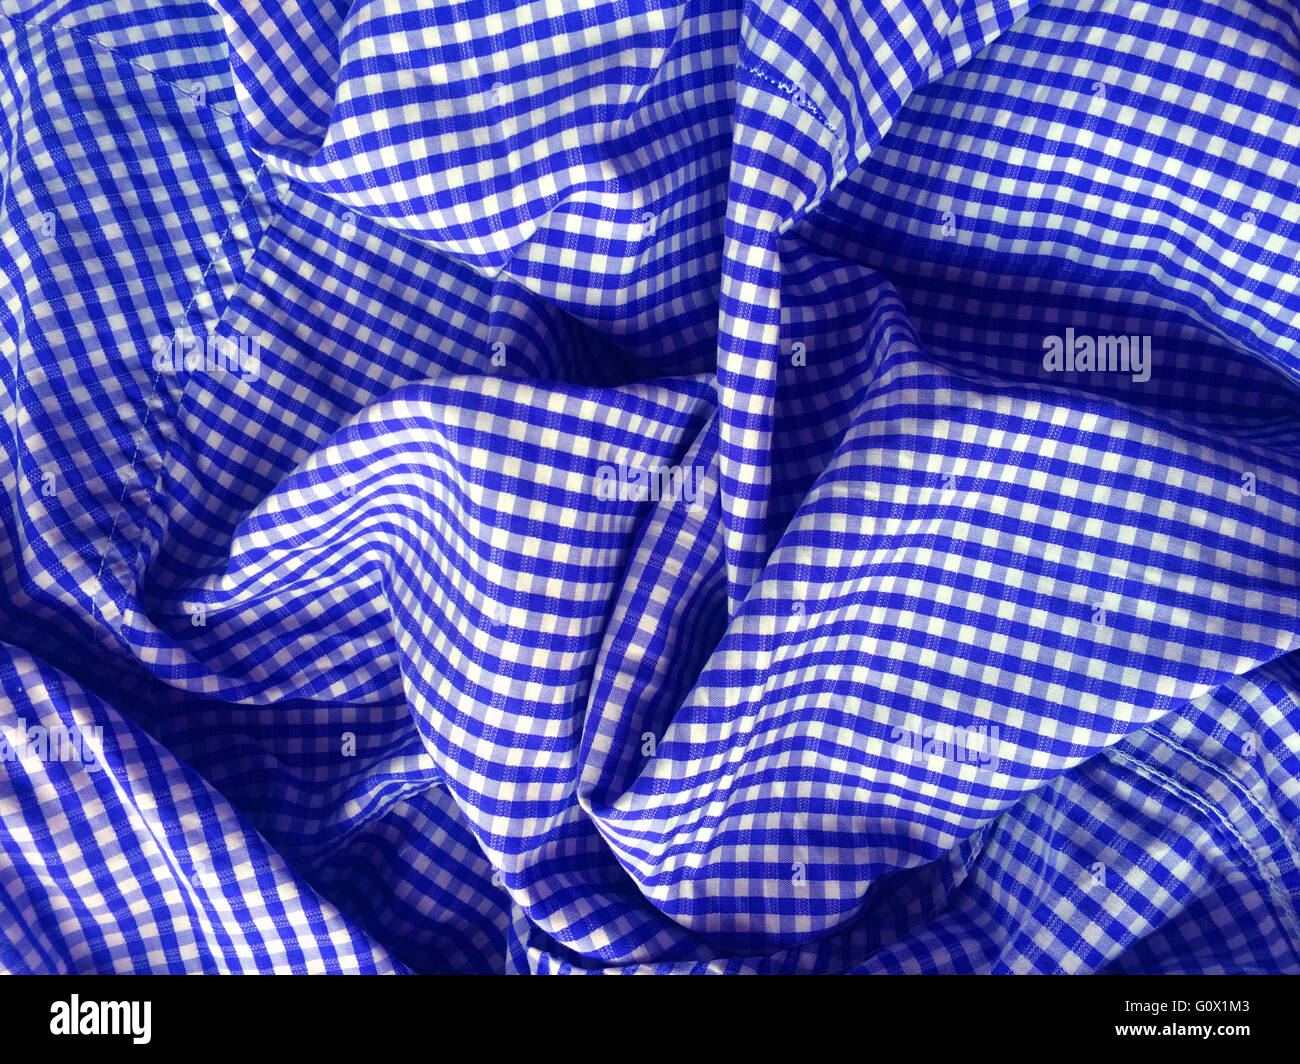 Gingham textile with nobody - Stock Image